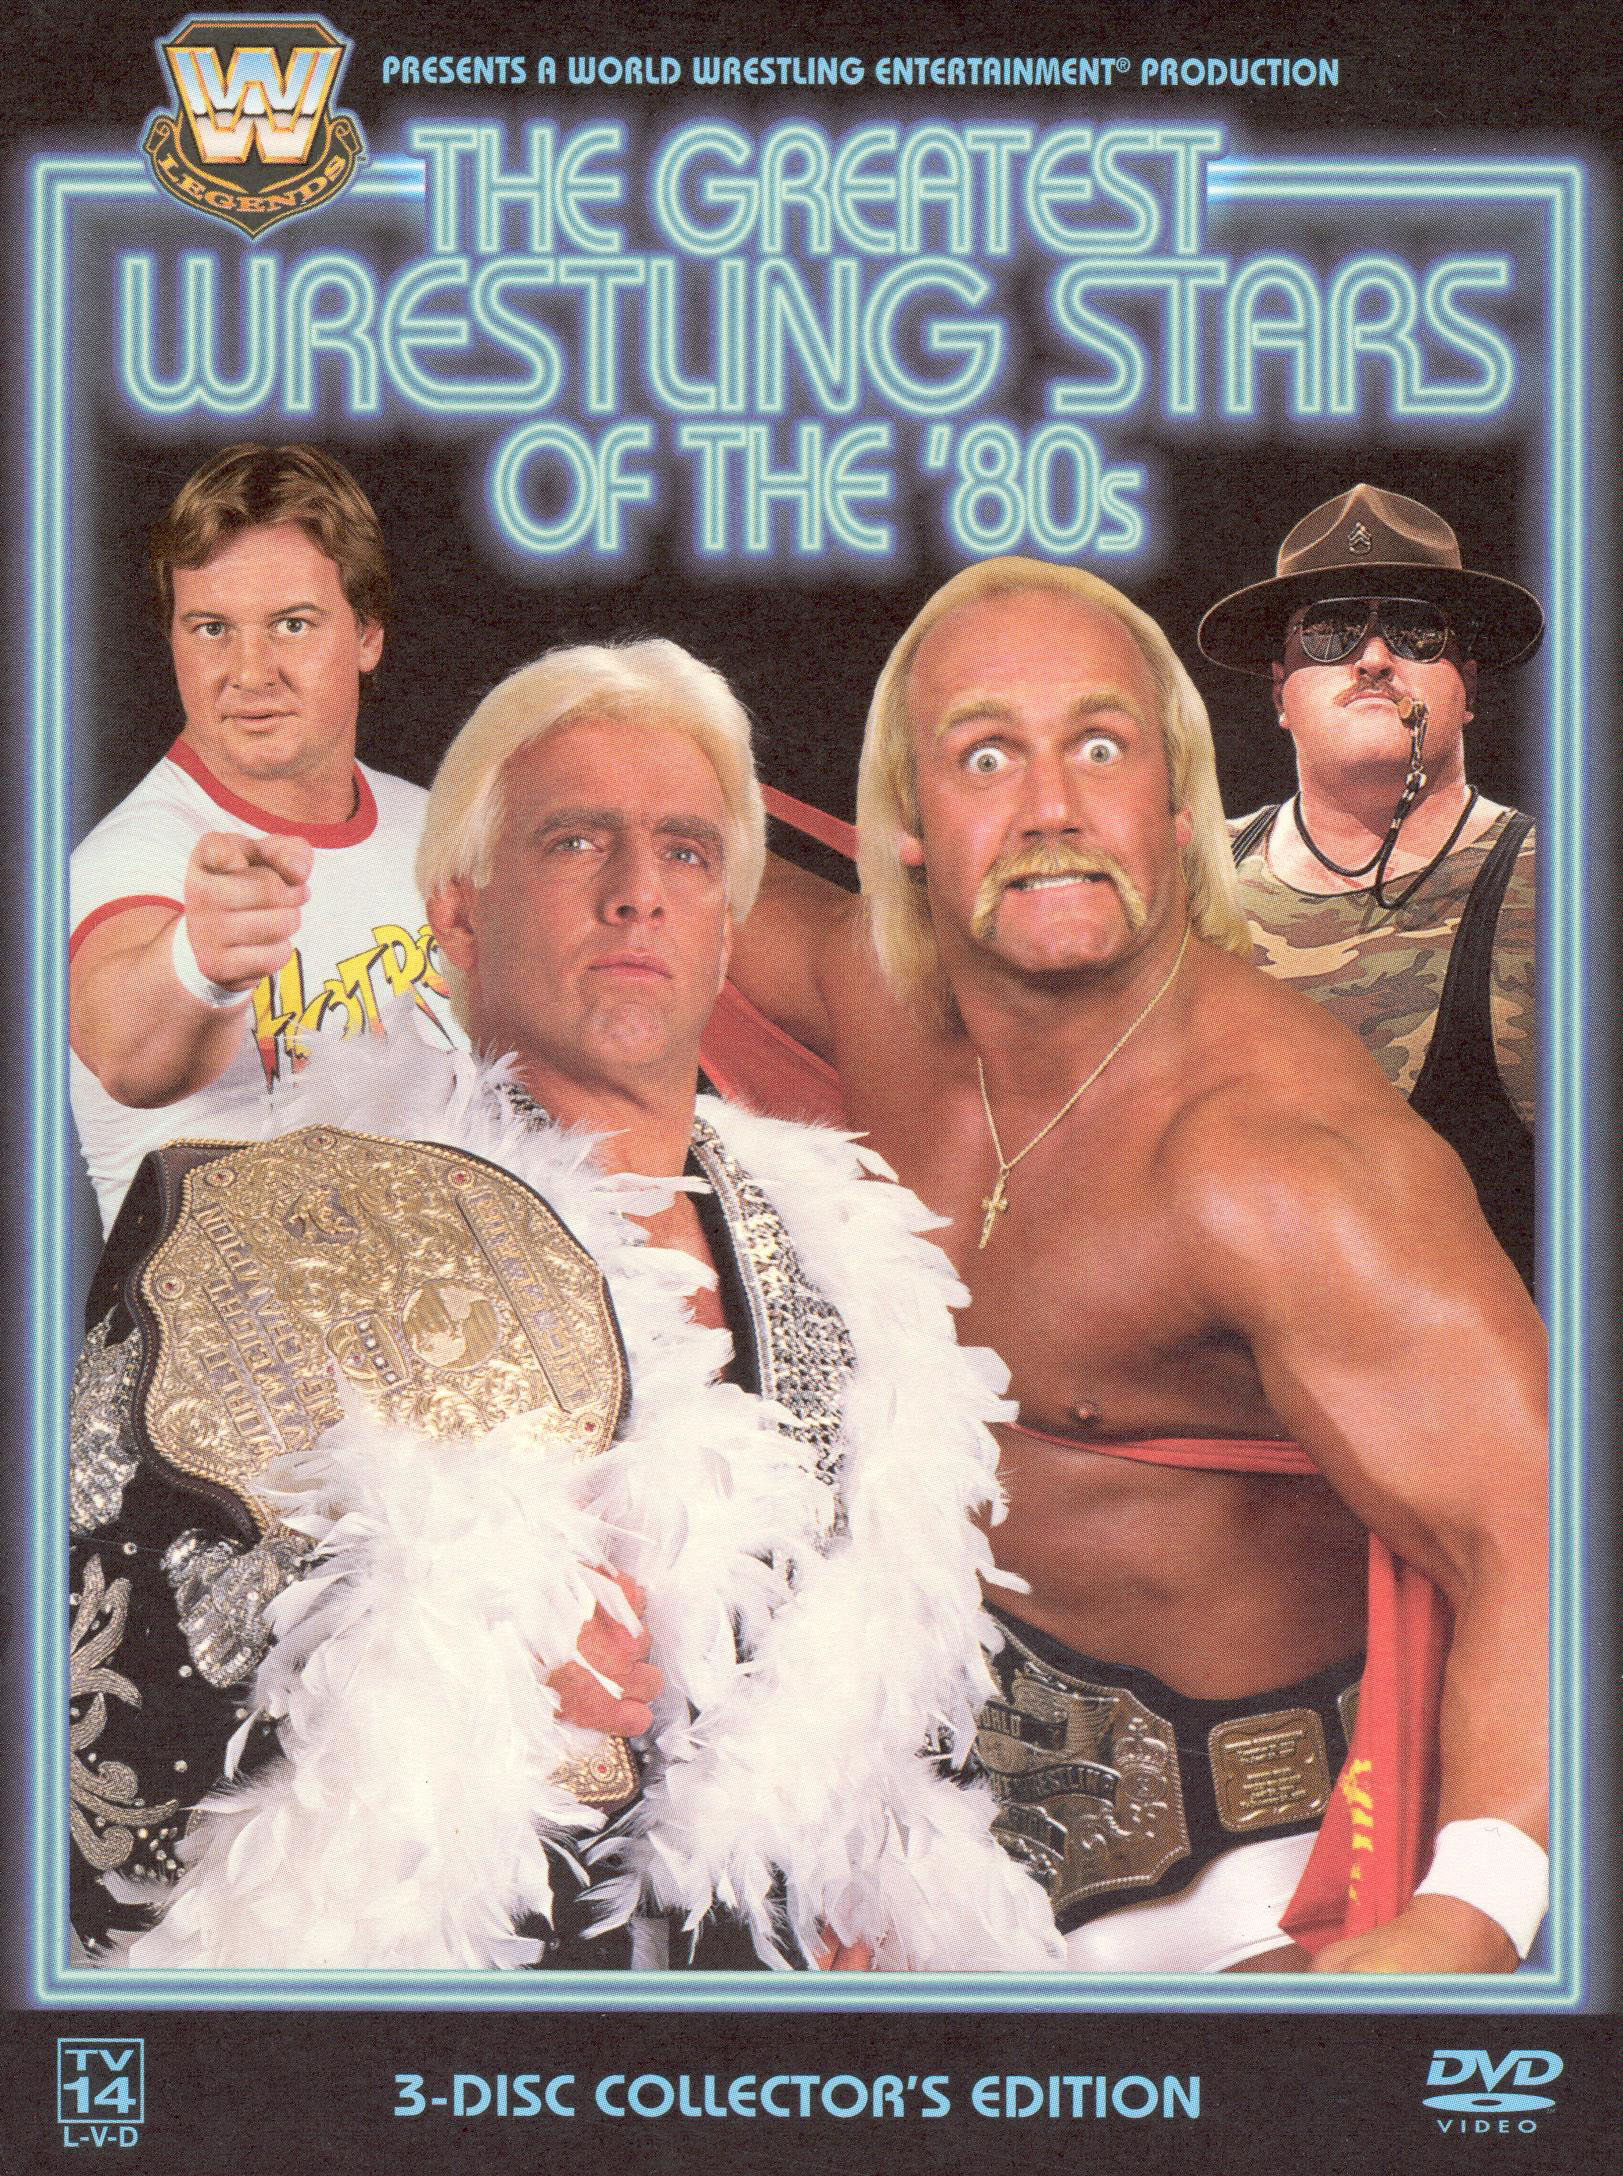 WWE: The Greatest Wrestling Stars of the '80s